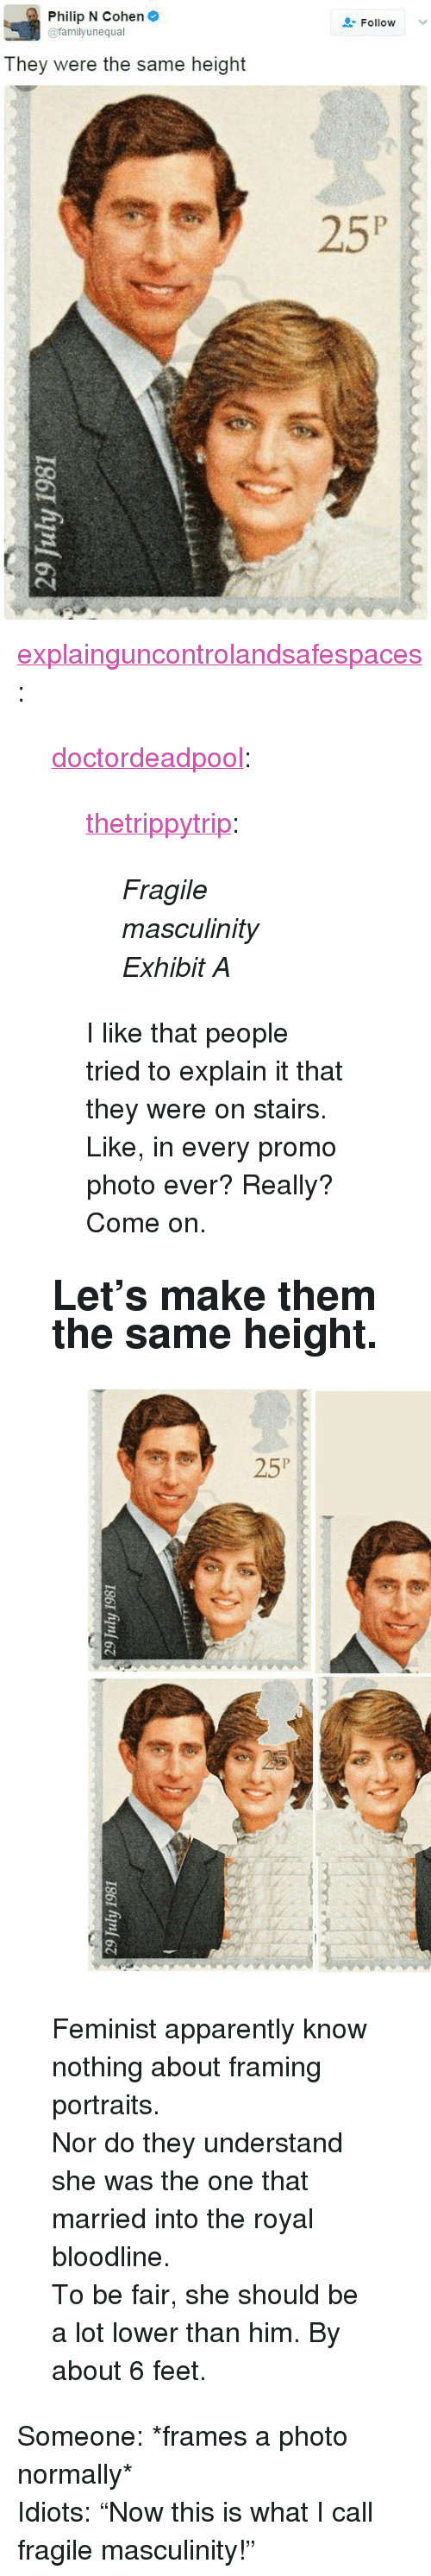 "Apparently, Tumblr, and Blog: Philip N Cohen  @familyunequal  Follow  They were the same height <p><a href=""https://explainguncontrolandsafespaces.tumblr.com/post/158750119633/doctordeadpool-thetrippytrip-fragile"" class=""tumblr_blog"">explainguncontrolandsafespaces</a>:</p>  <blockquote><p><a href=""http://doctordeadpool.tumblr.com/post/158723639384/thetrippytrip-fragile-masculinity-exhibit-a"" class=""tumblr_blog"">doctordeadpool</a>:</p><blockquote> <p><a href=""https://thetrippytrip.tumblr.com/post/158508935146/fragile-masculinity-exhibit-a"" class=""tumblr_blog"">thetrippytrip</a>:</p> <blockquote><p><i>  Fragile masculinity Exhibit A  </i><br/></p></blockquote>  <p>I like that people tried to explain it that they were on stairs. Like, in every promo photo ever? Really? Come on.</p> </blockquote> <h2><b> Let's make them the same height. </b></h2><figure class=""tmblr-full"" data-orig-height=""678"" data-orig-width=""540""><img src=""https://78.media.tumblr.com/31591a2ea860f0c0e81ba82b85ee96e7/tumblr_inline_onaa3elpzE1timgxw_540.jpg"" data-orig-height=""678"" data-orig-width=""540""/></figure><p>Feminist apparently know nothing about framing portraits. </p><p>Nor do they understand she was the one that married into the royal bloodline. <br/></p><p>To be fair, she should be a lot lower than him. By about 6 feet. </p></blockquote>  <p>Someone: *frames a photo normally*<br/>Idiots: &ldquo;Now this is what I call fragile masculinity!&rdquo;</p>"